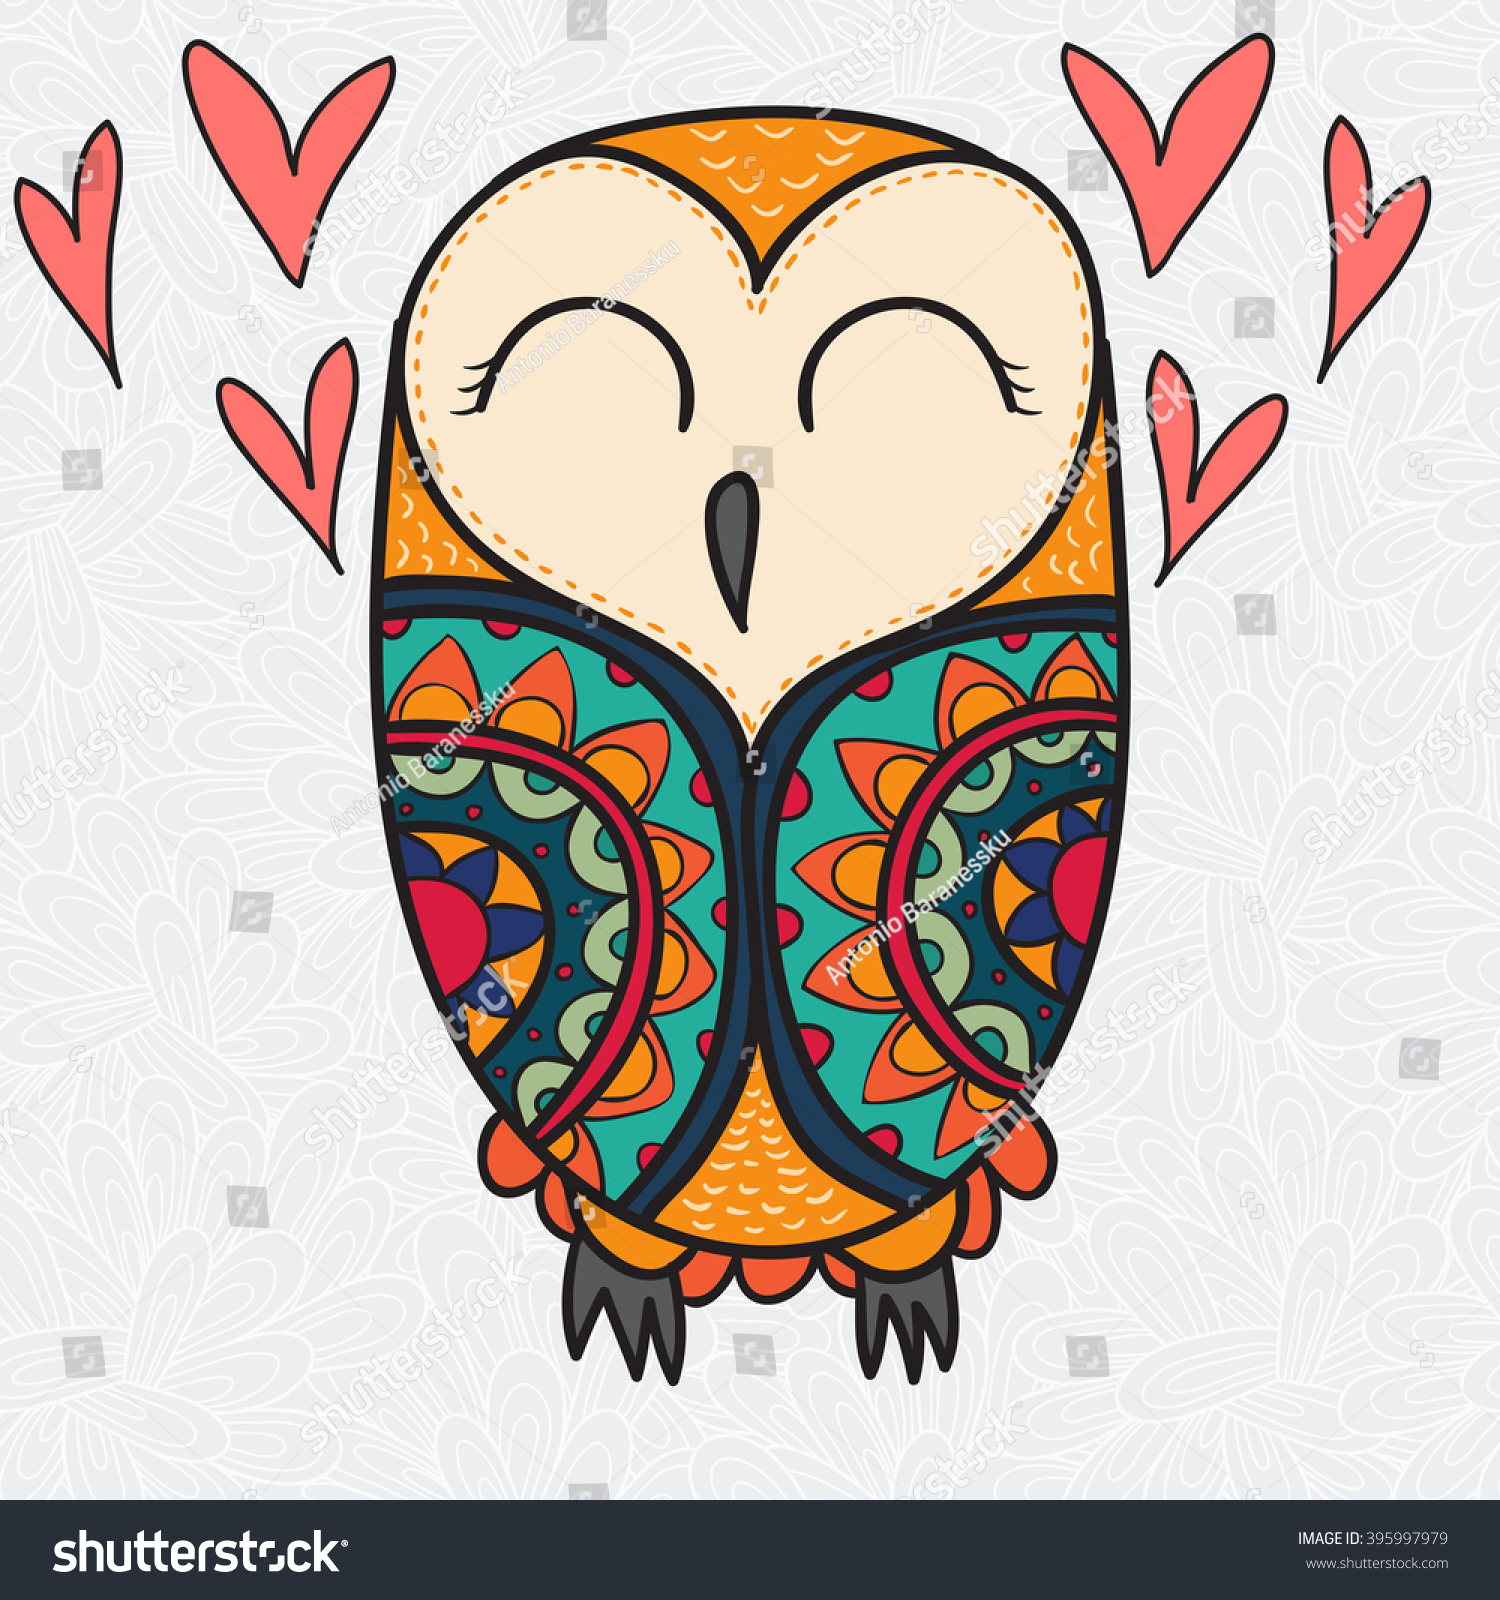 Cute colorful owl wallpapers